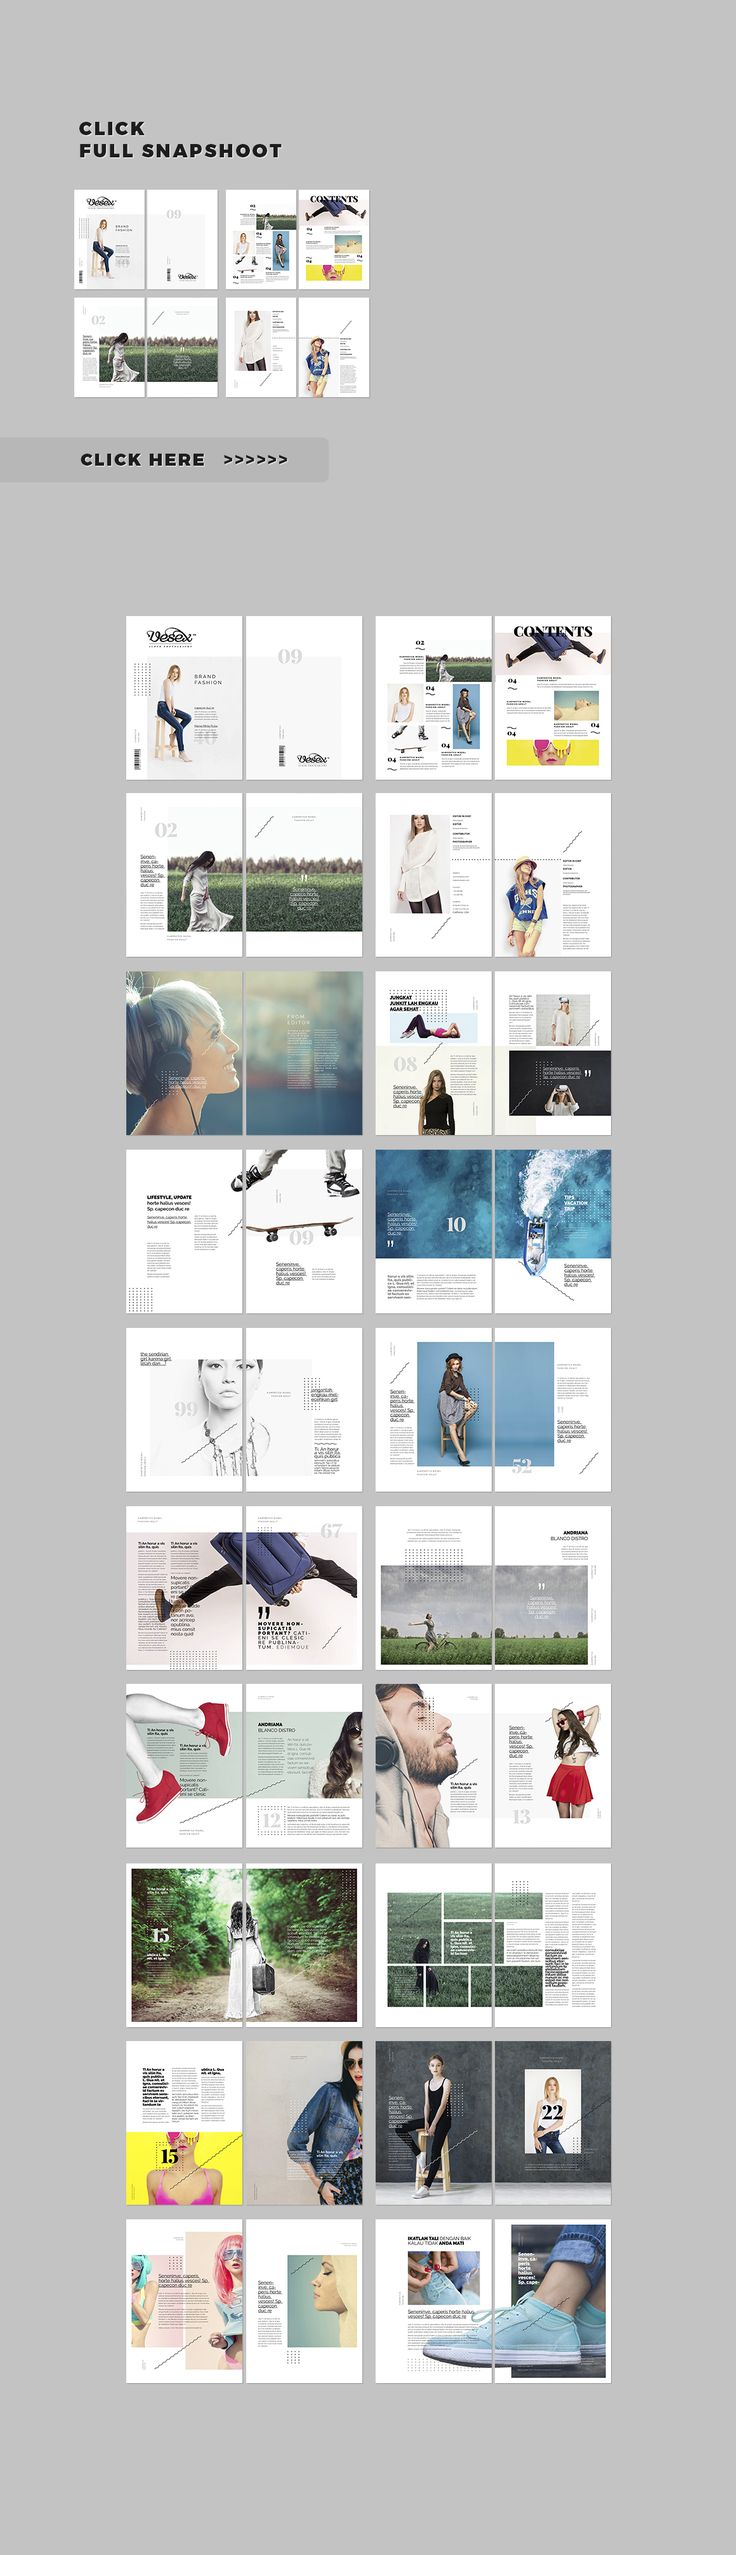 a4 size,	clean cover white,	clean fashion magazine,	clean layout,	clean magazine, clothing,	contemporary magazine, creative,	designer,	dresses,	editorial, fashion brochure,	fashion catalogue, fashion collection,	fashion design, fashion lookbook,	fashion magazine,	flat design,	fresh,	indesign,	letter size, minimal layout,	modern,	simple,	simple fashion magazine,	simple layout,	simple magazine,	swiss design,	urban fashion